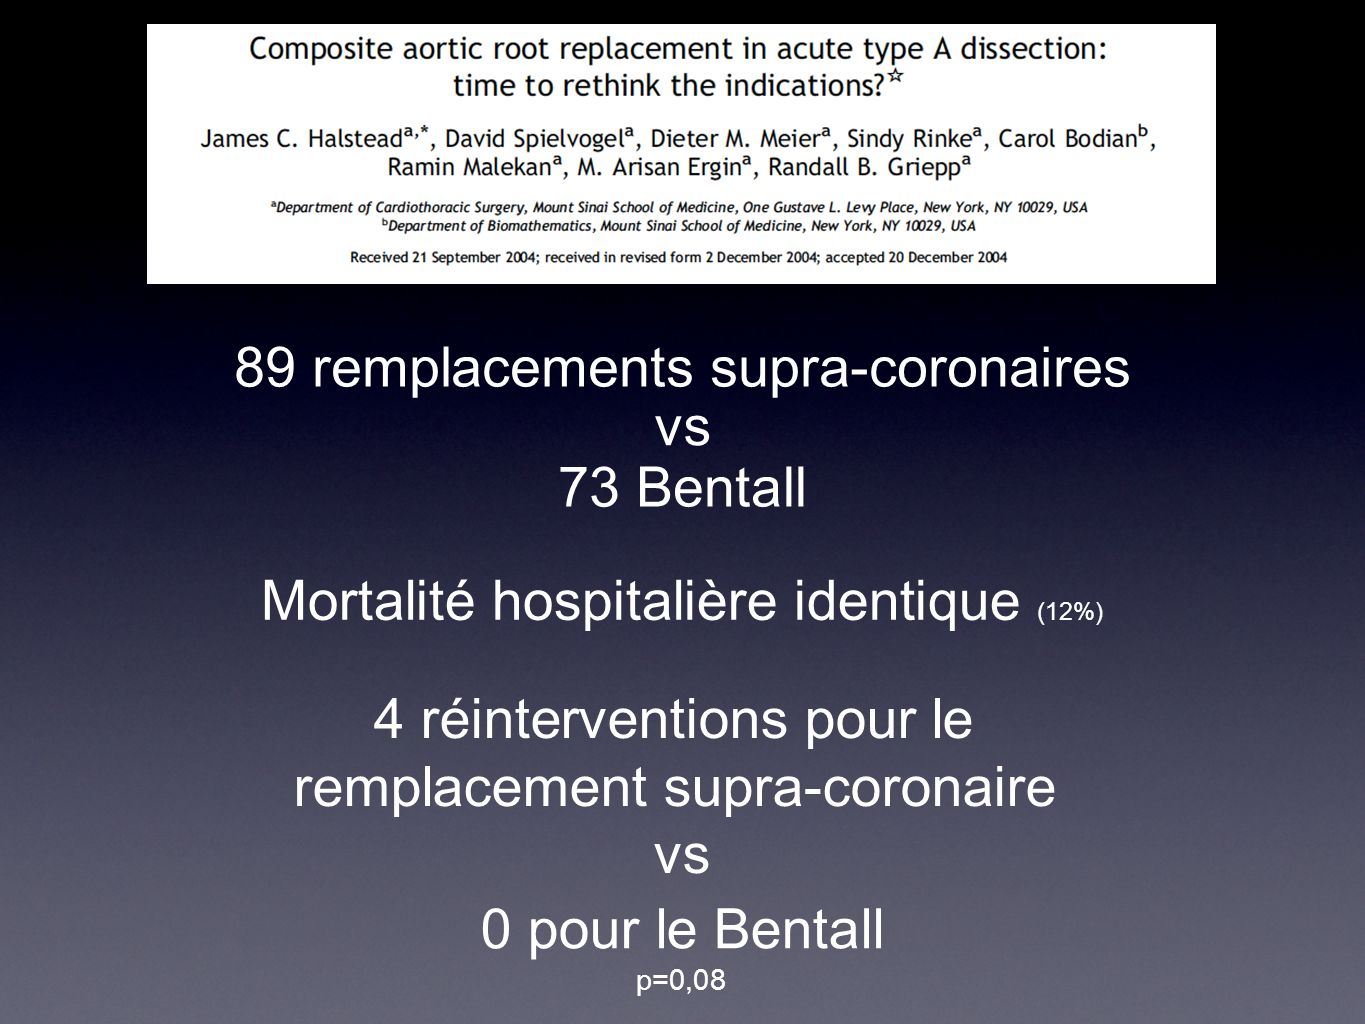 89 remplacements supra-coronaires vs 73 Bentall